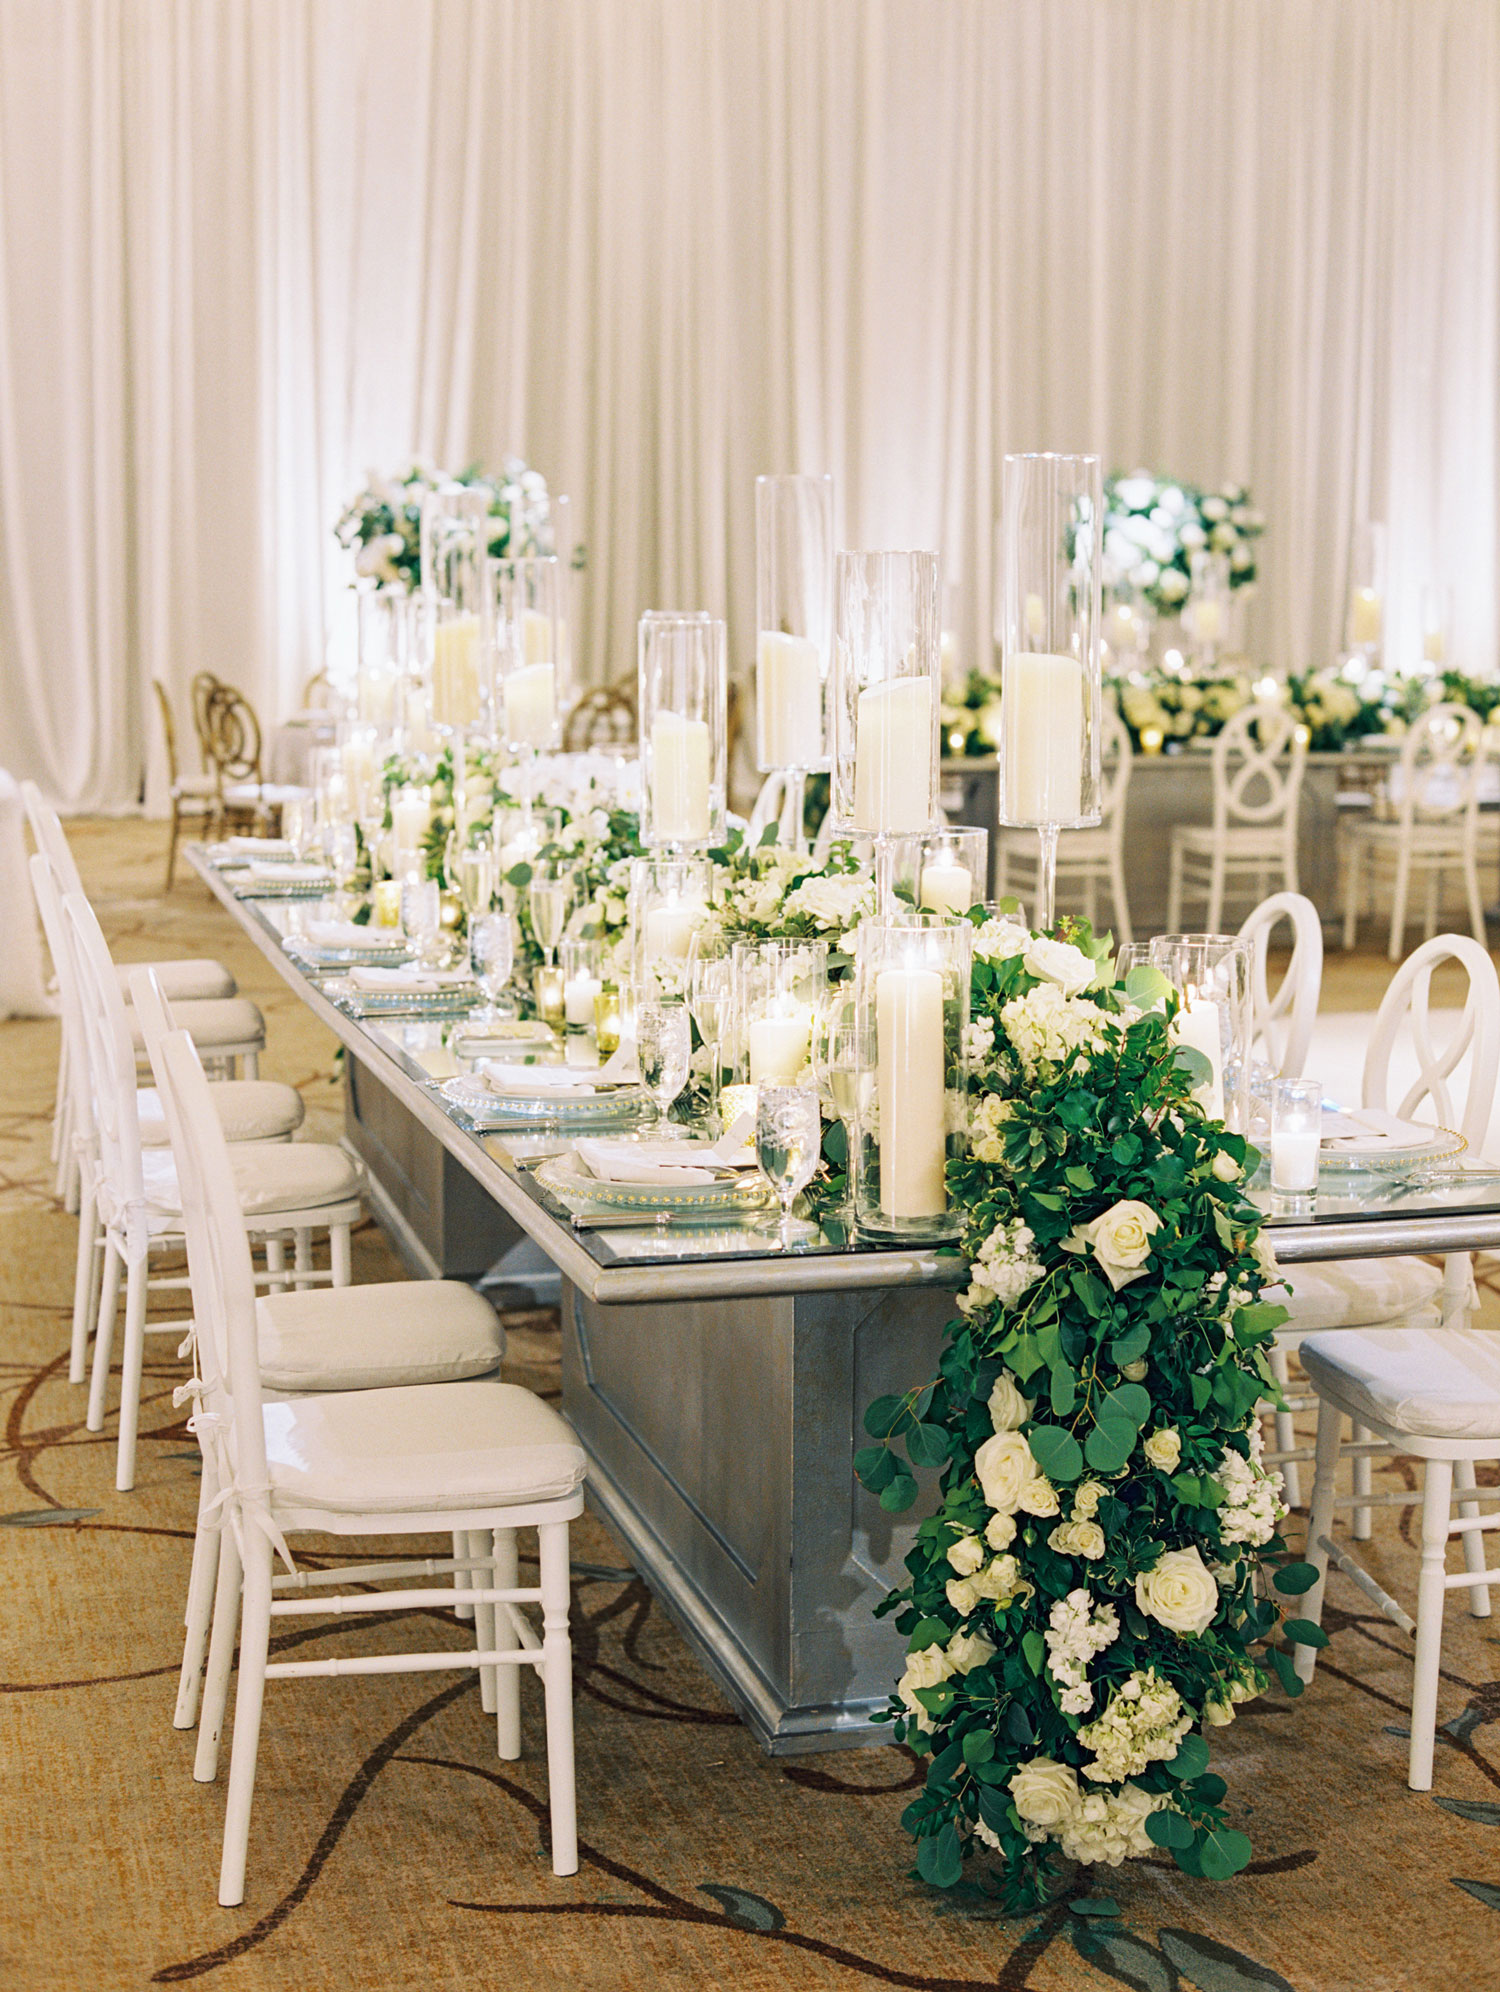 Drapery wedding reception indoor wedding soco events amaryllis floral and event design nuage designs inside weddings spring 2018 issue